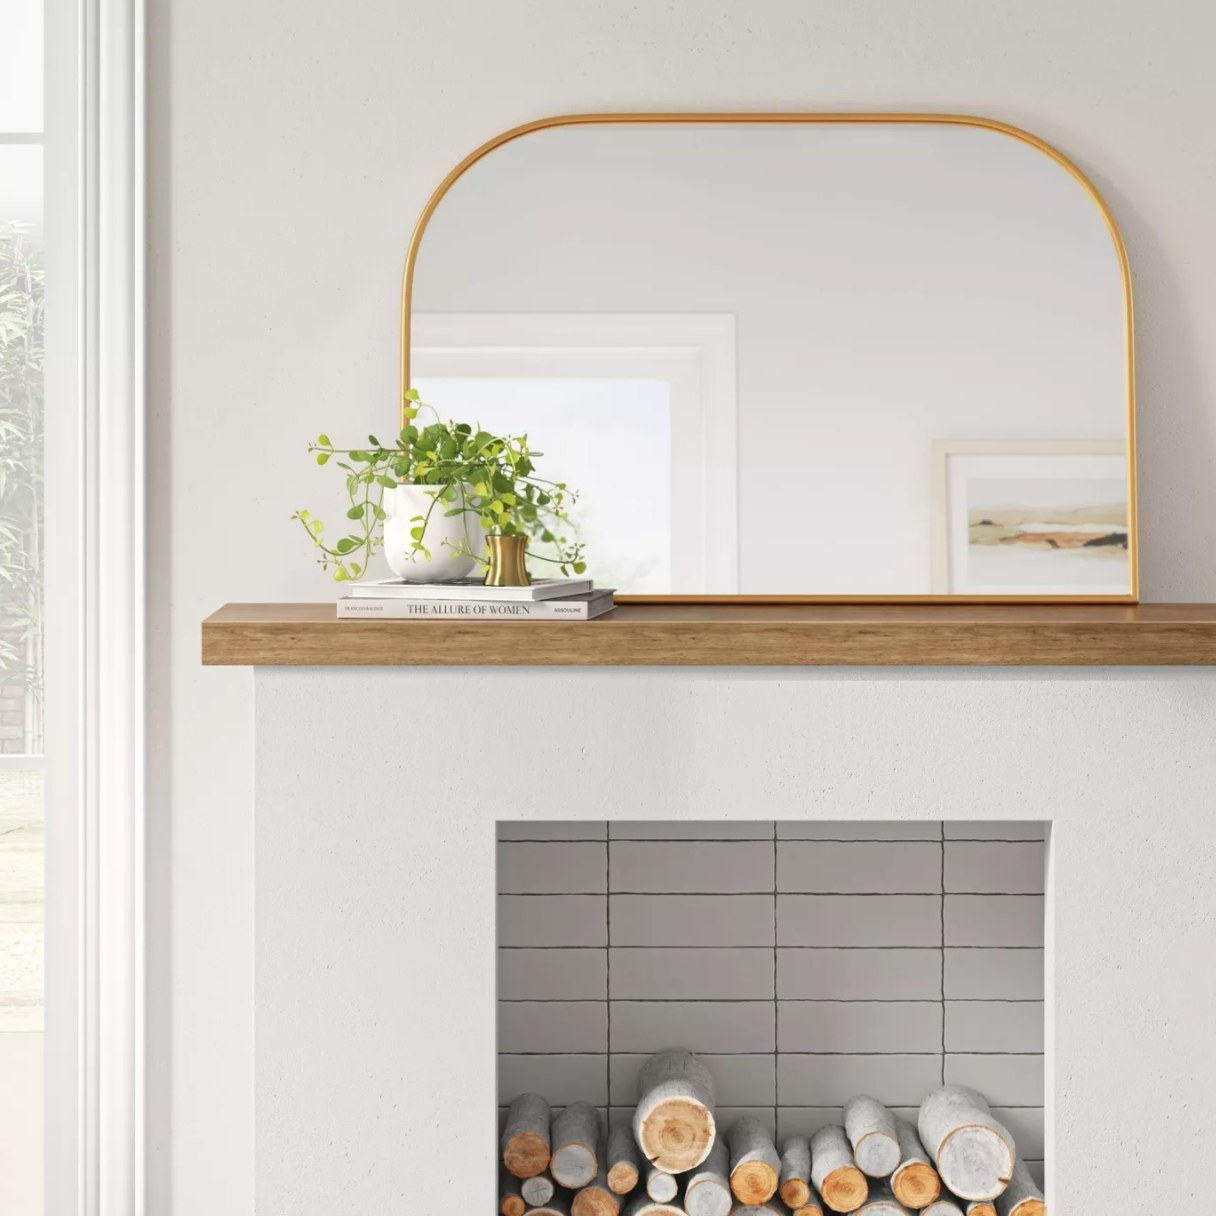 The mantle mirror